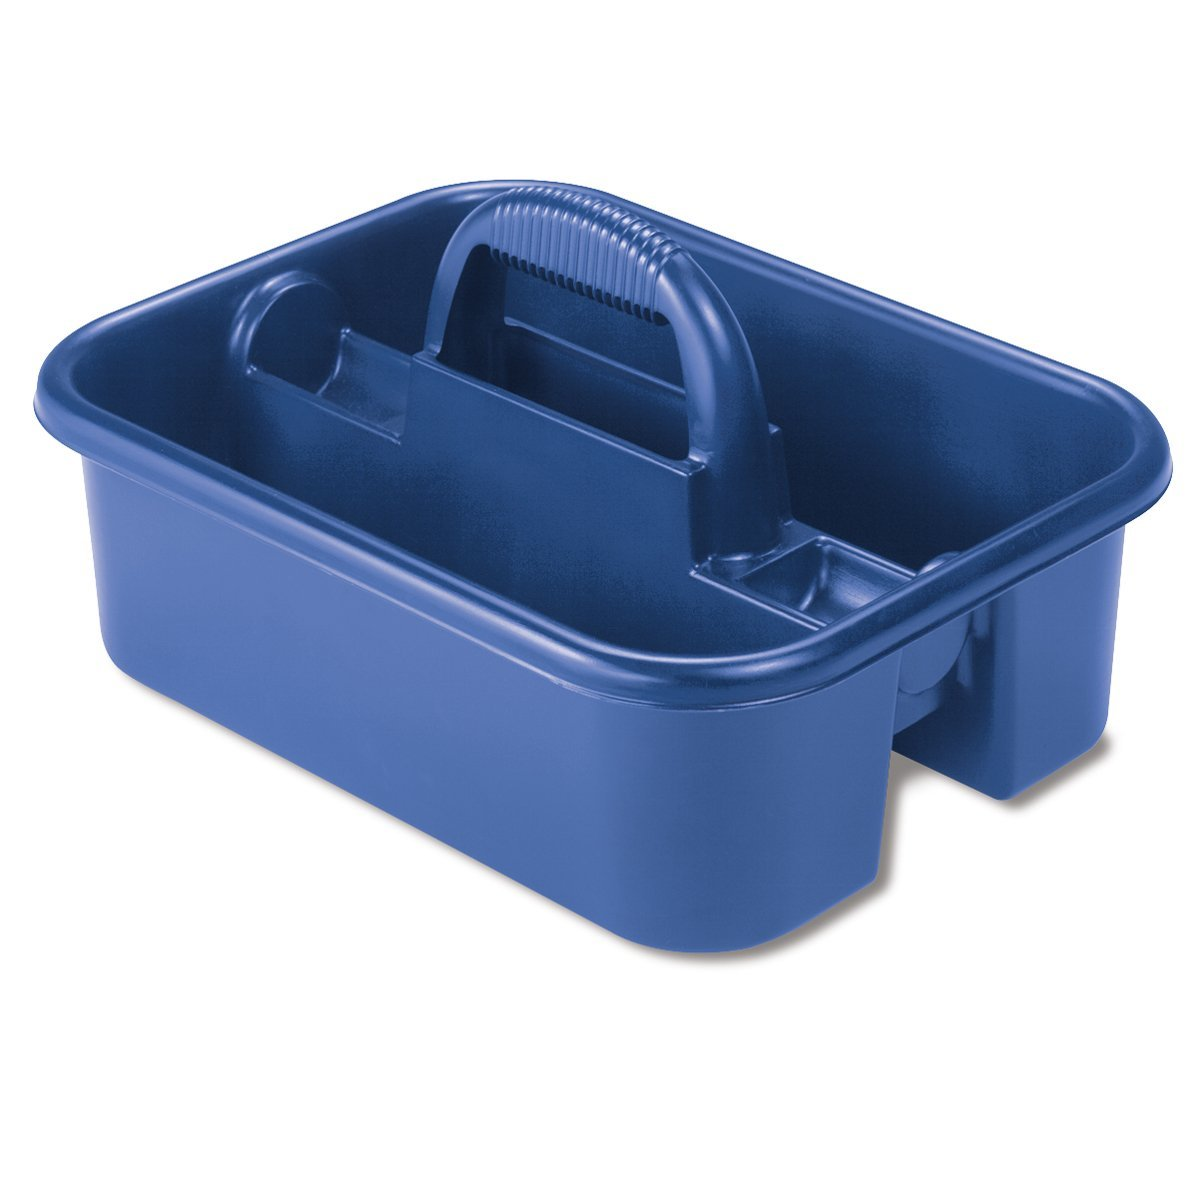 Akro Mils Tool Caddy 09185BLUE from 4MD Medical